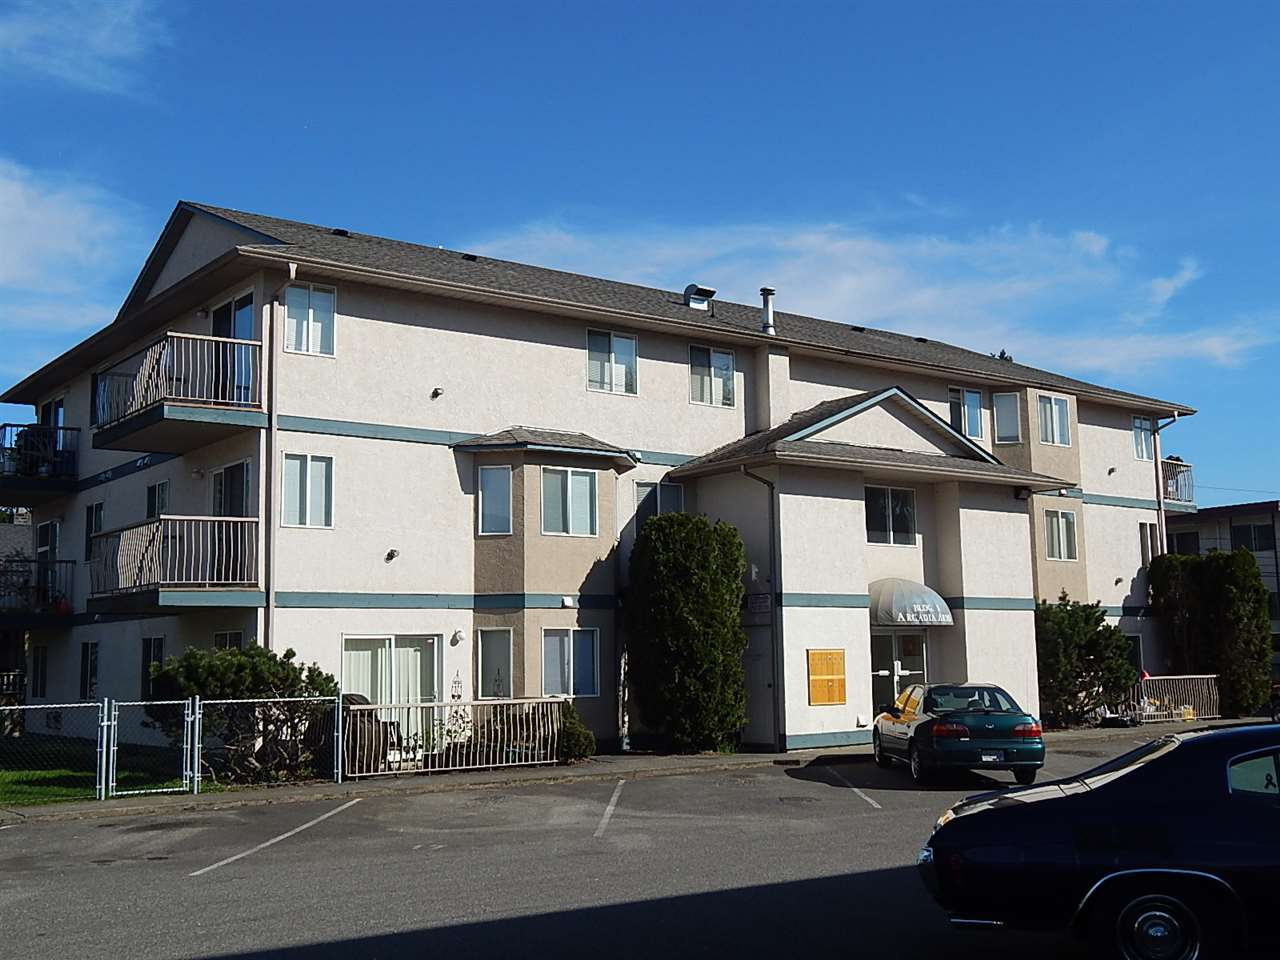 Main Photo: 16 46160 PRINCESS AVENUE in Chilliwack: Chilliwack E Young-Yale Condo for sale : MLS®# R2048322